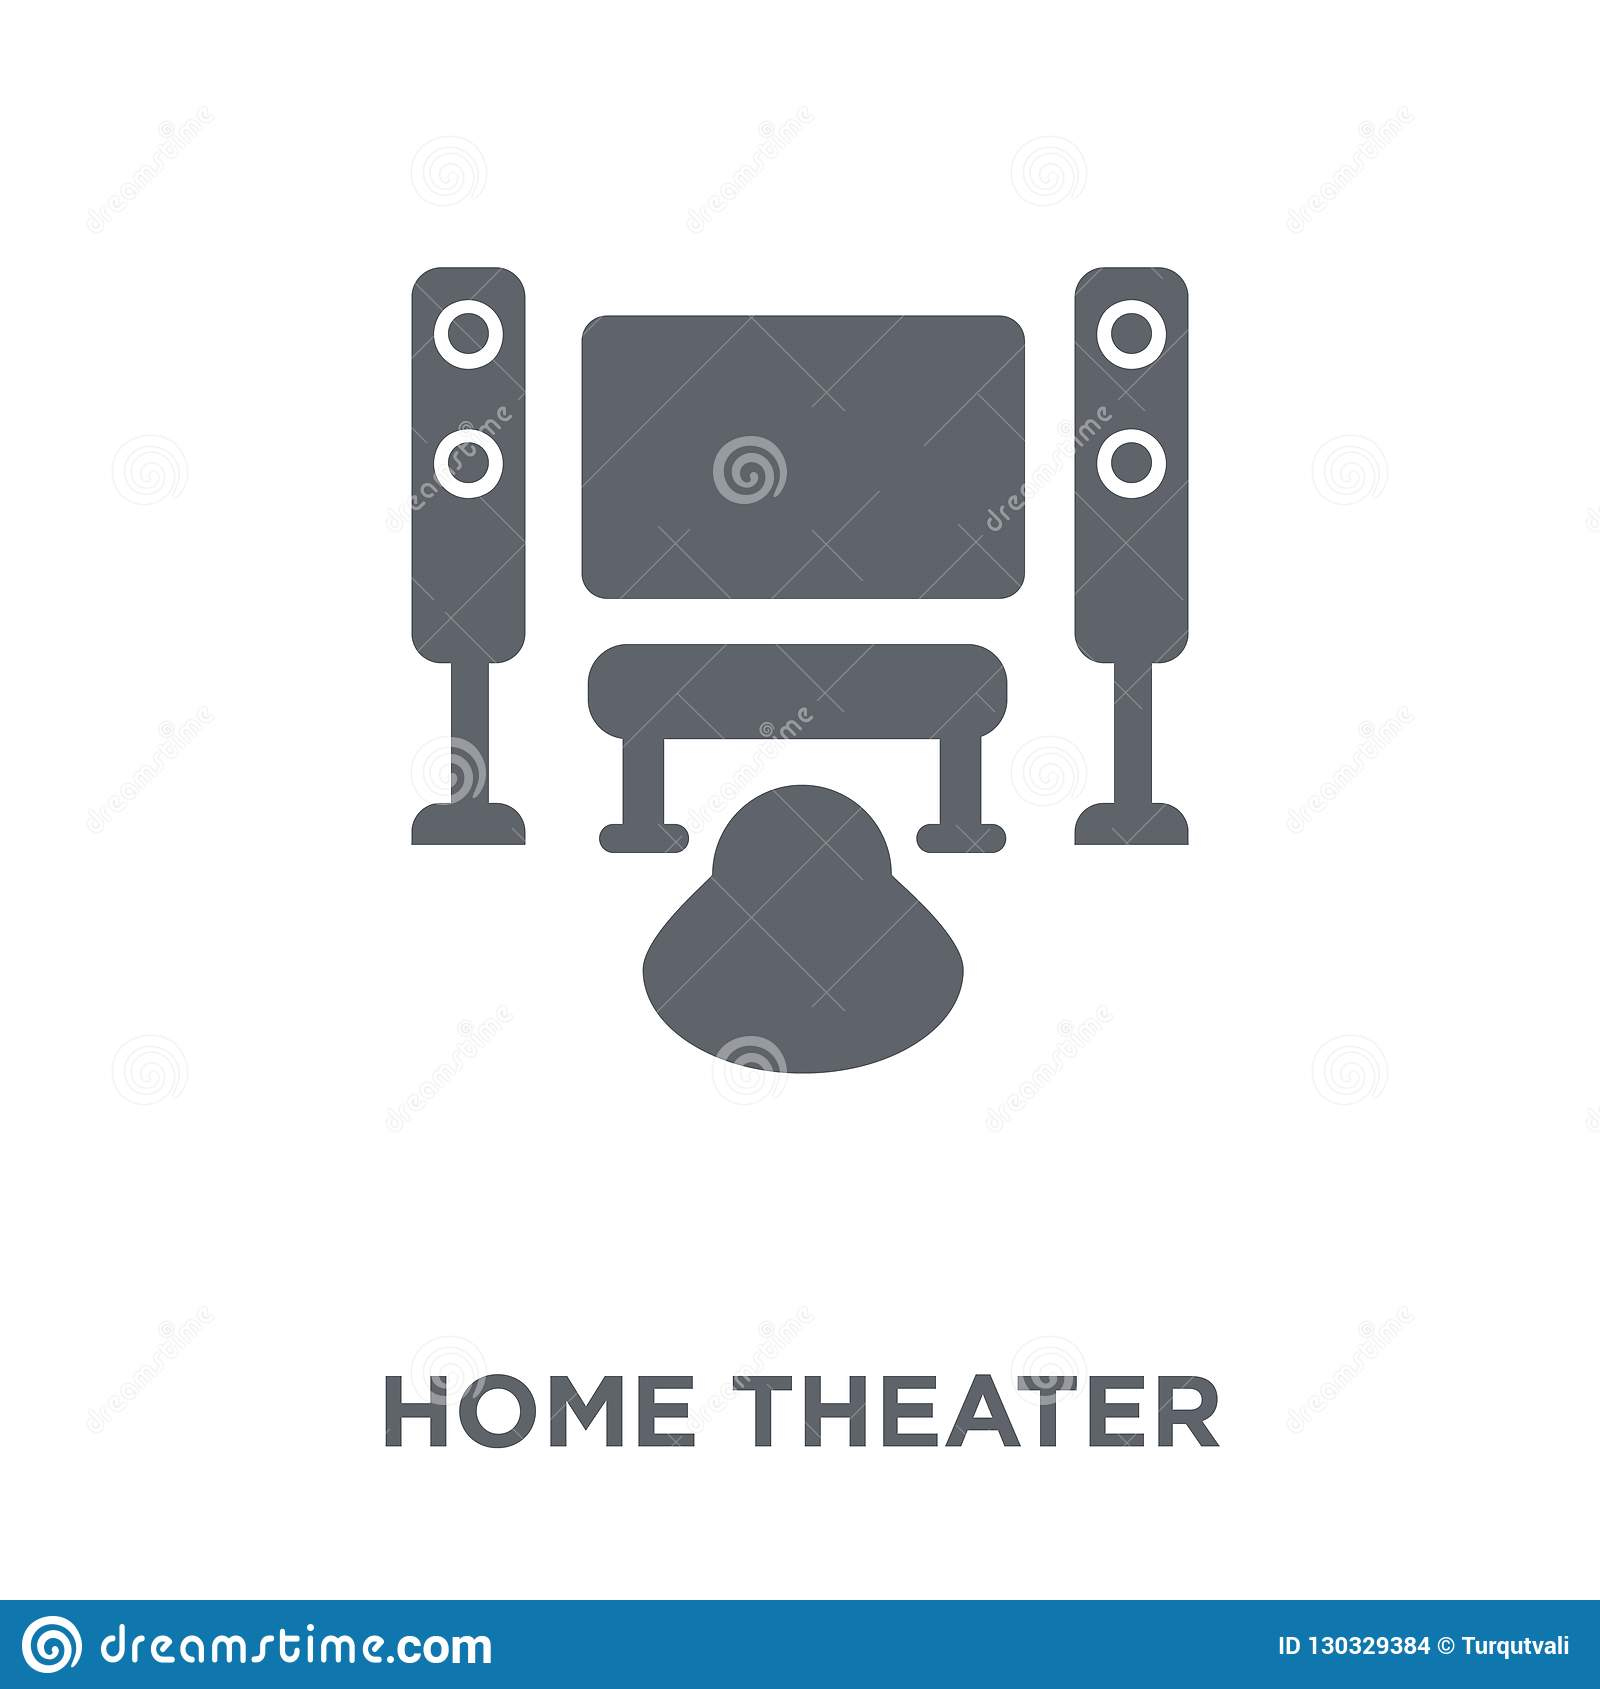 Home Theatre Design Concepts: Home Theater Icon From Entertainment Collection. Stock